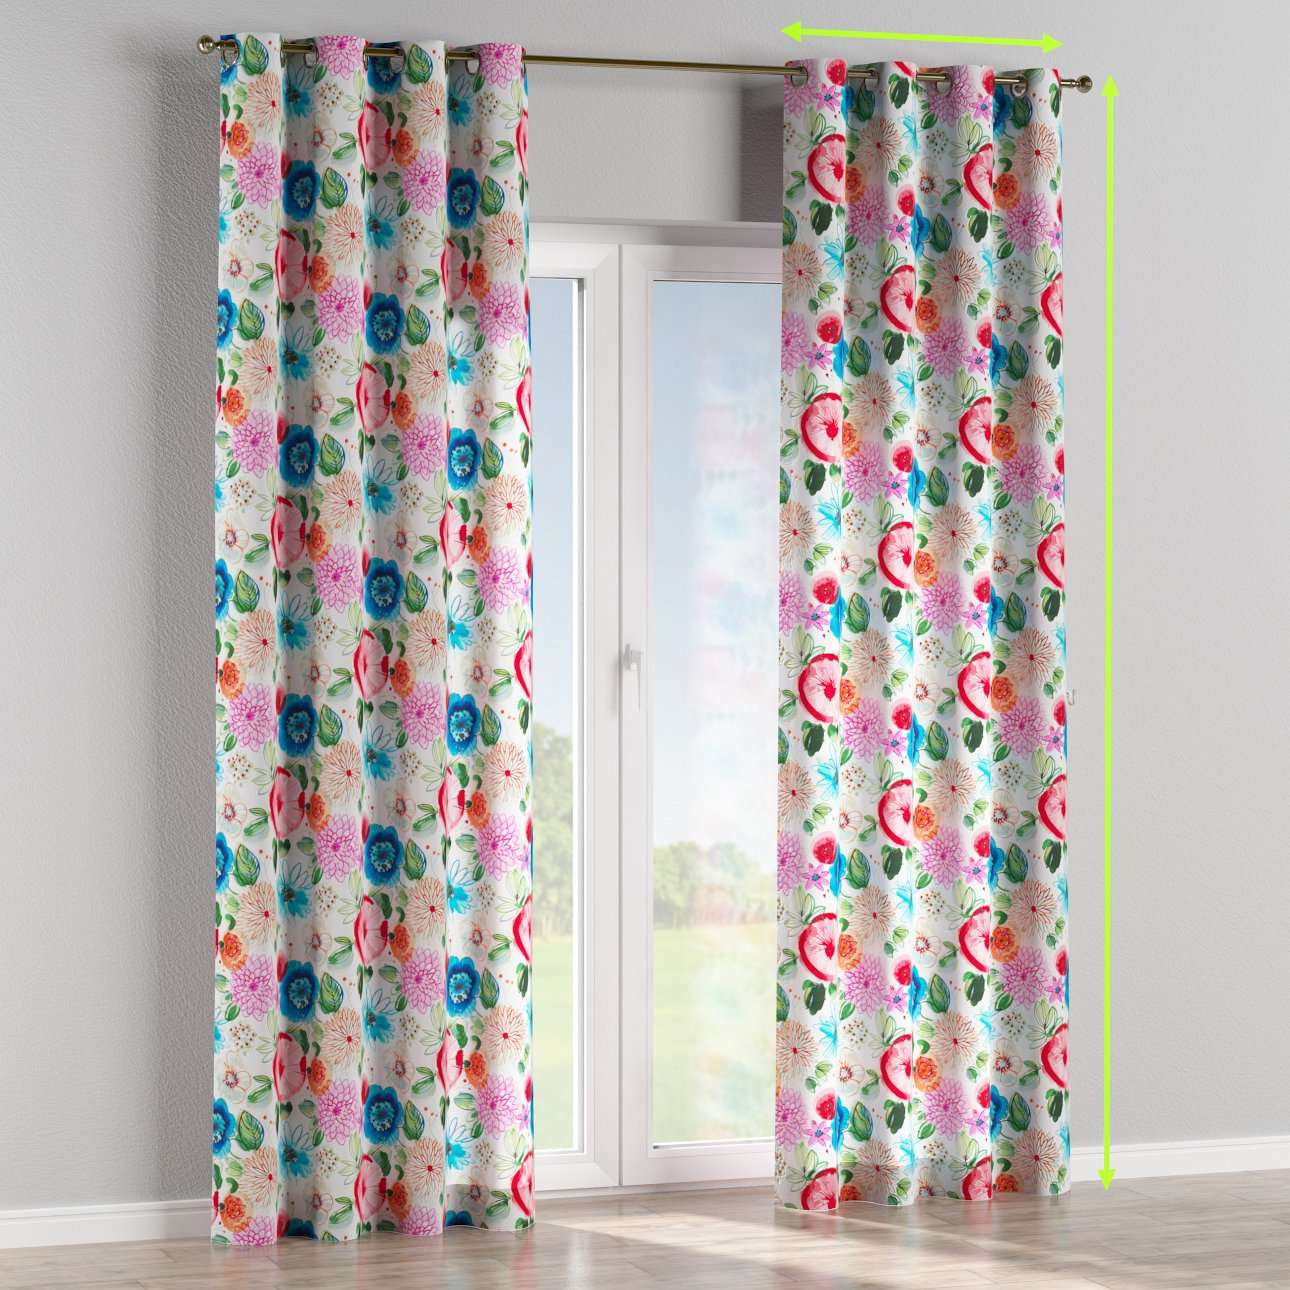 Eyelet lined curtains in collection New Art, fabric: 140-24